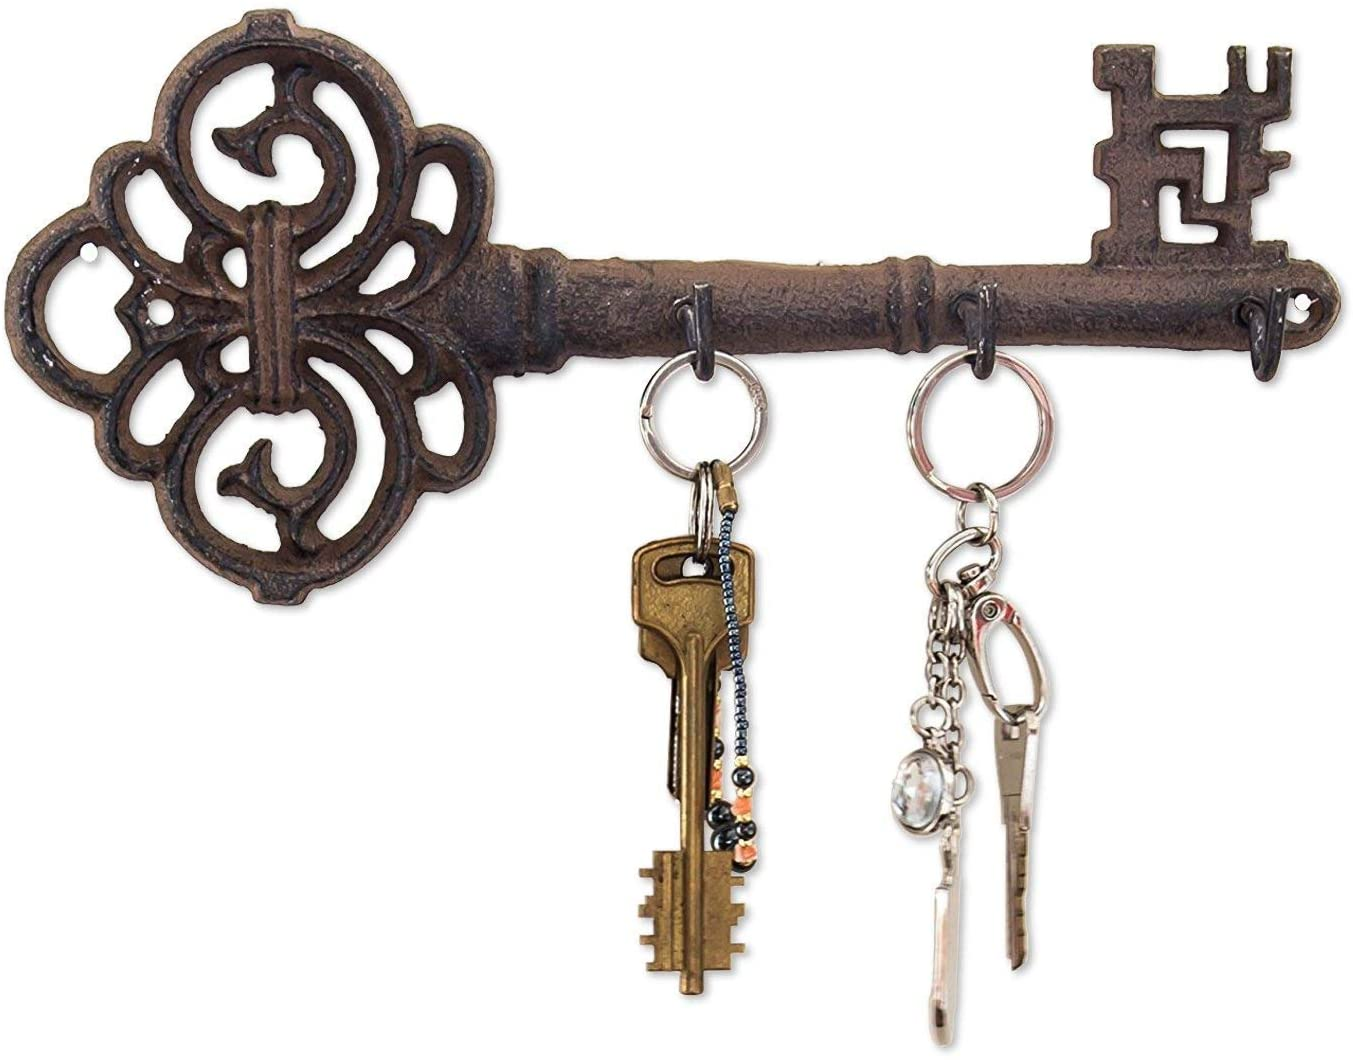 10-10 best key holders for wall